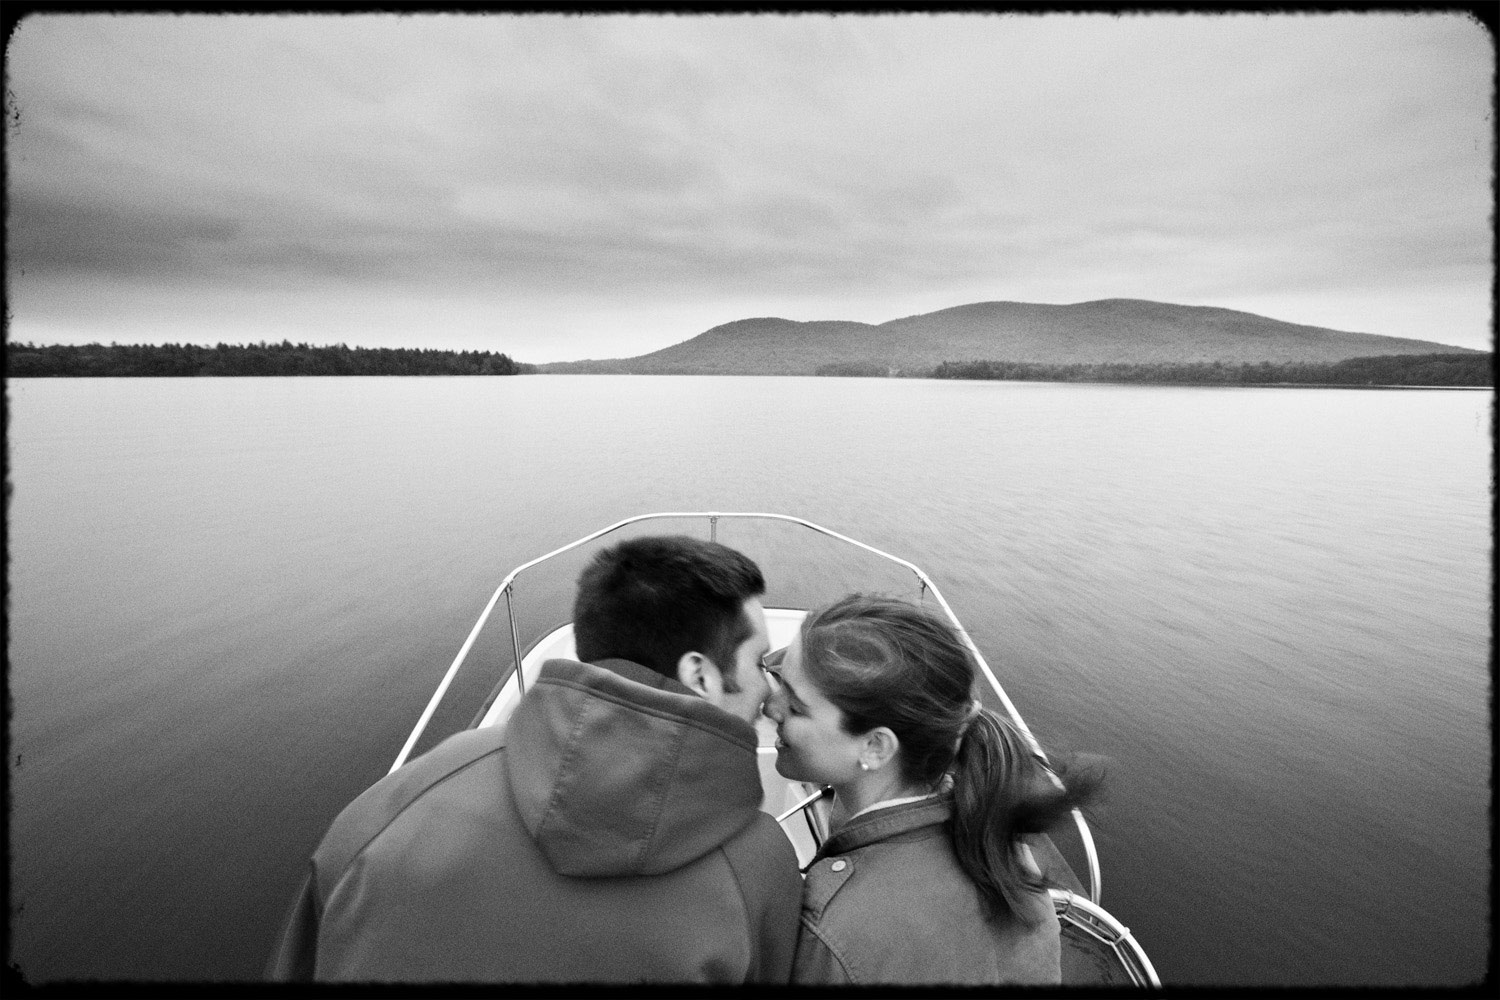 squam_lake_engagement_boat_kiss